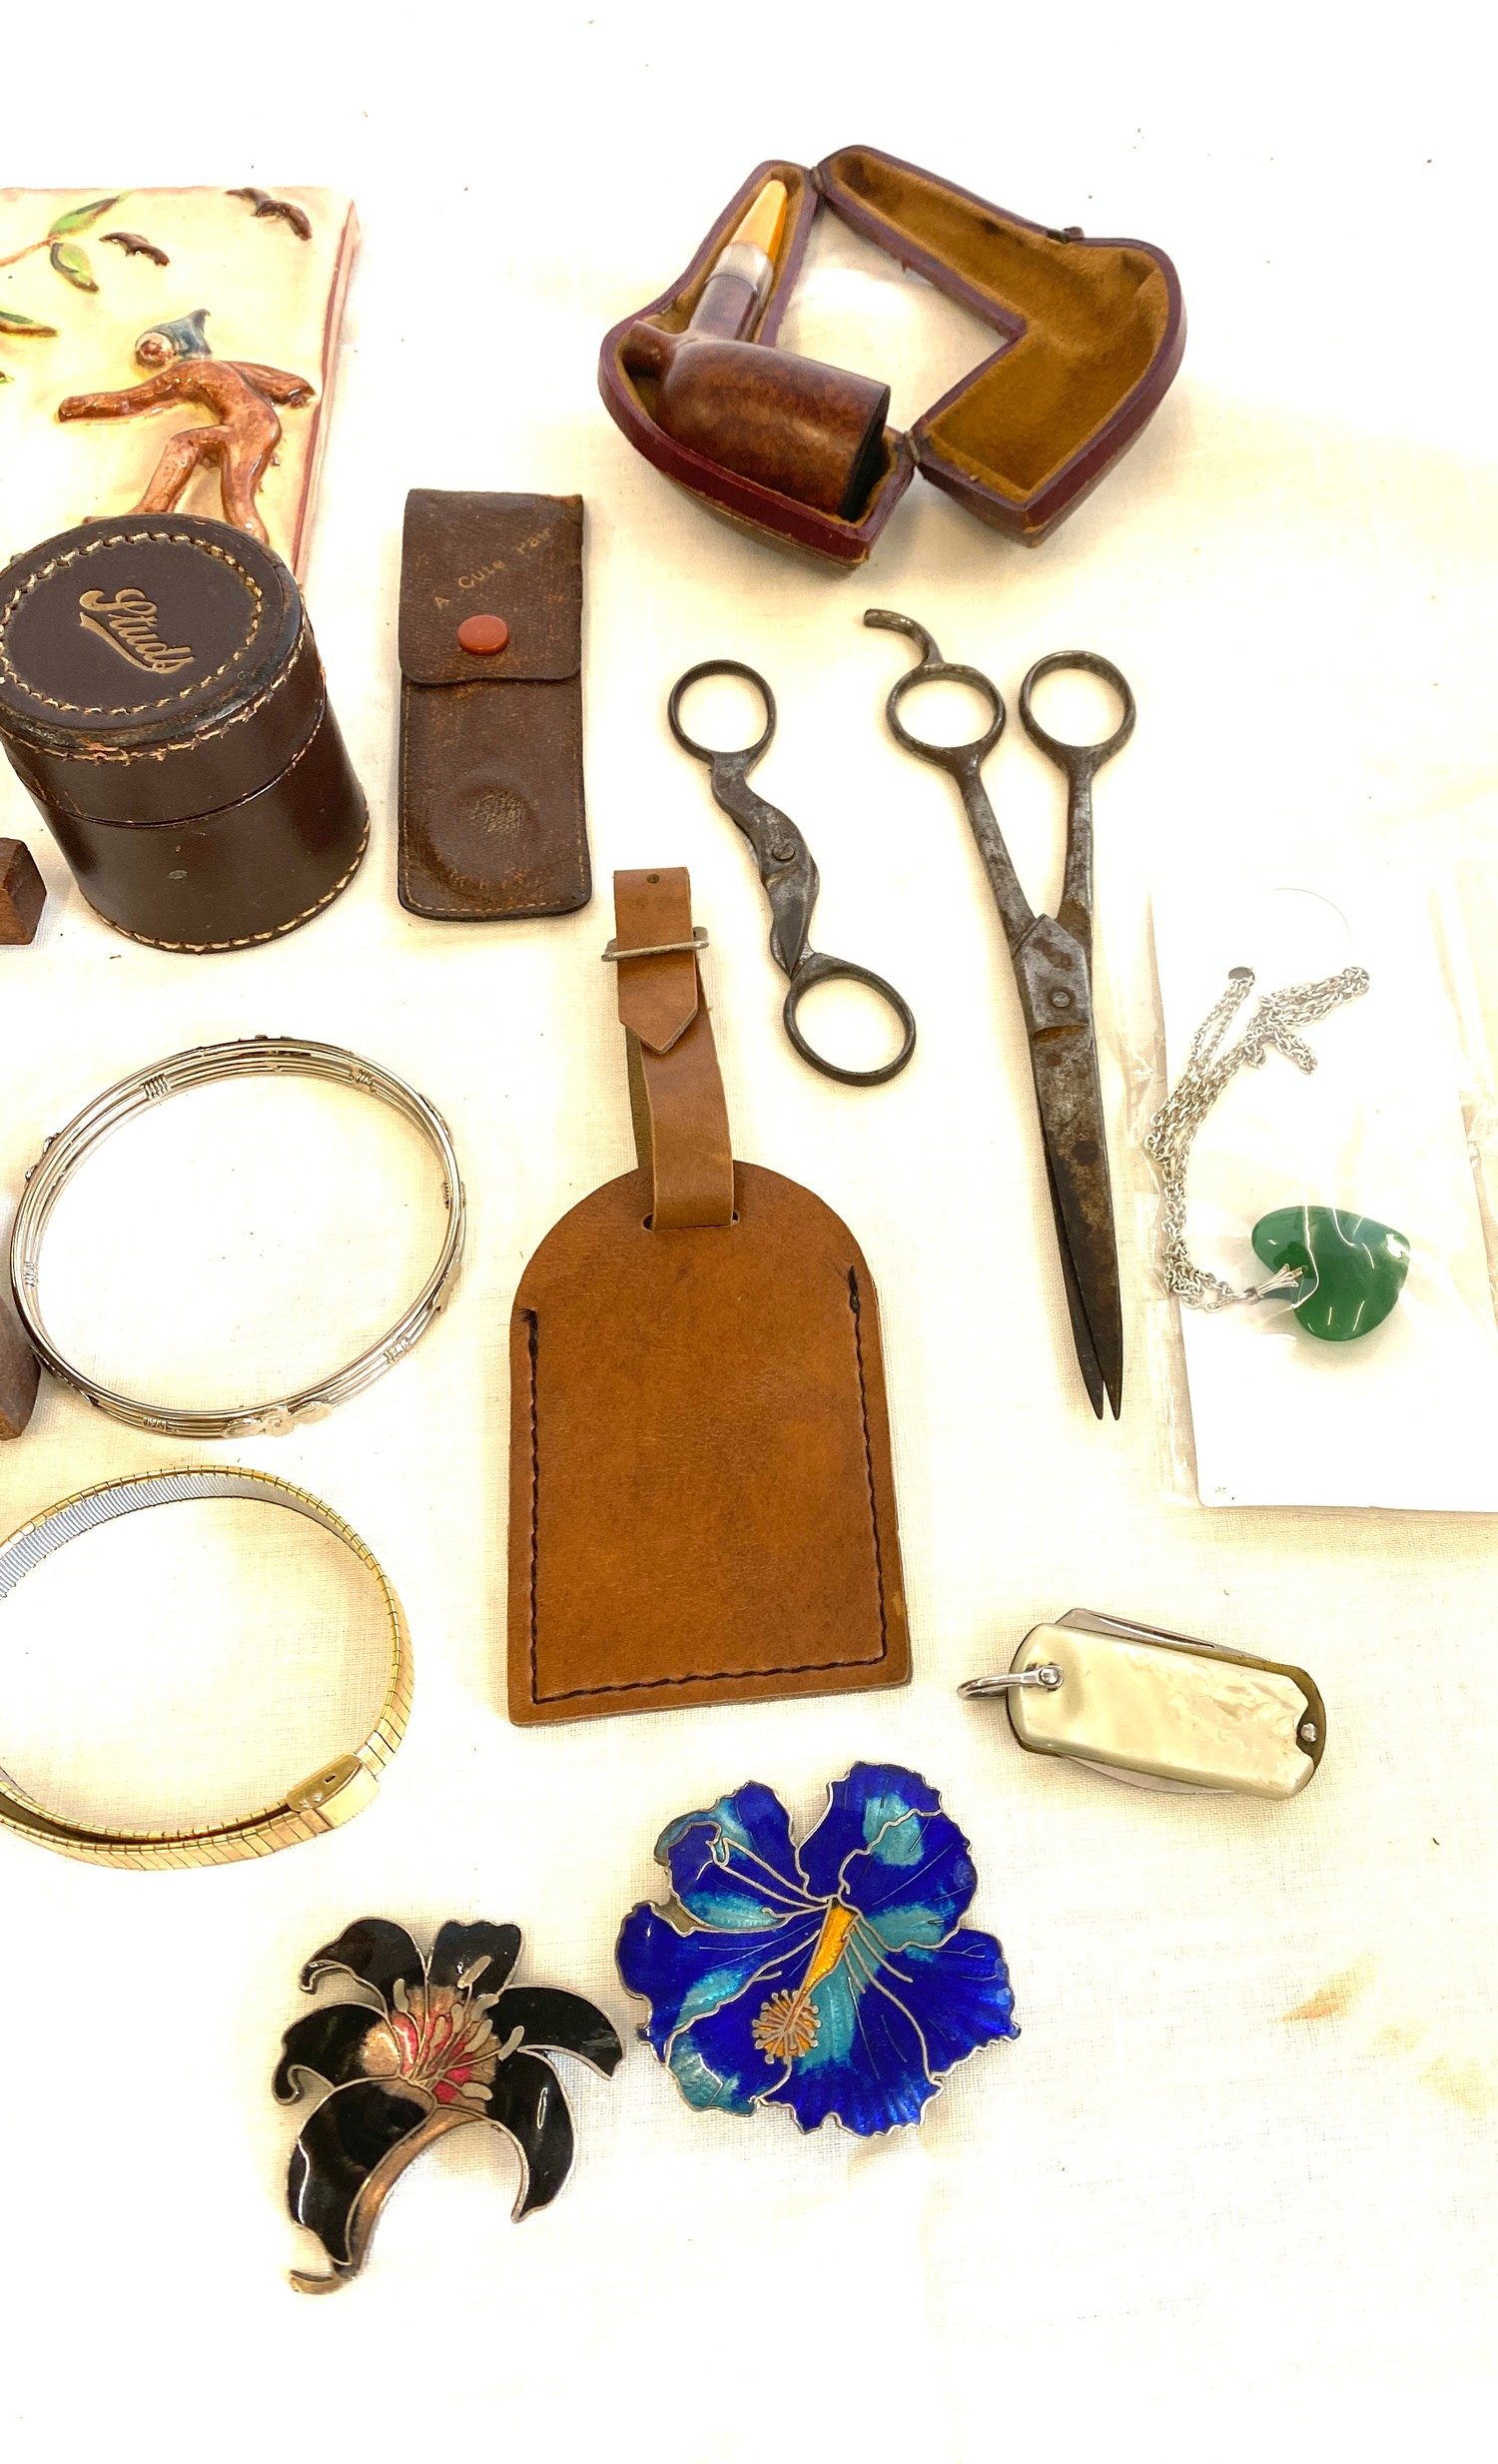 Tray of miscellaneous includes jewellery, pipe etc - Image 2 of 4